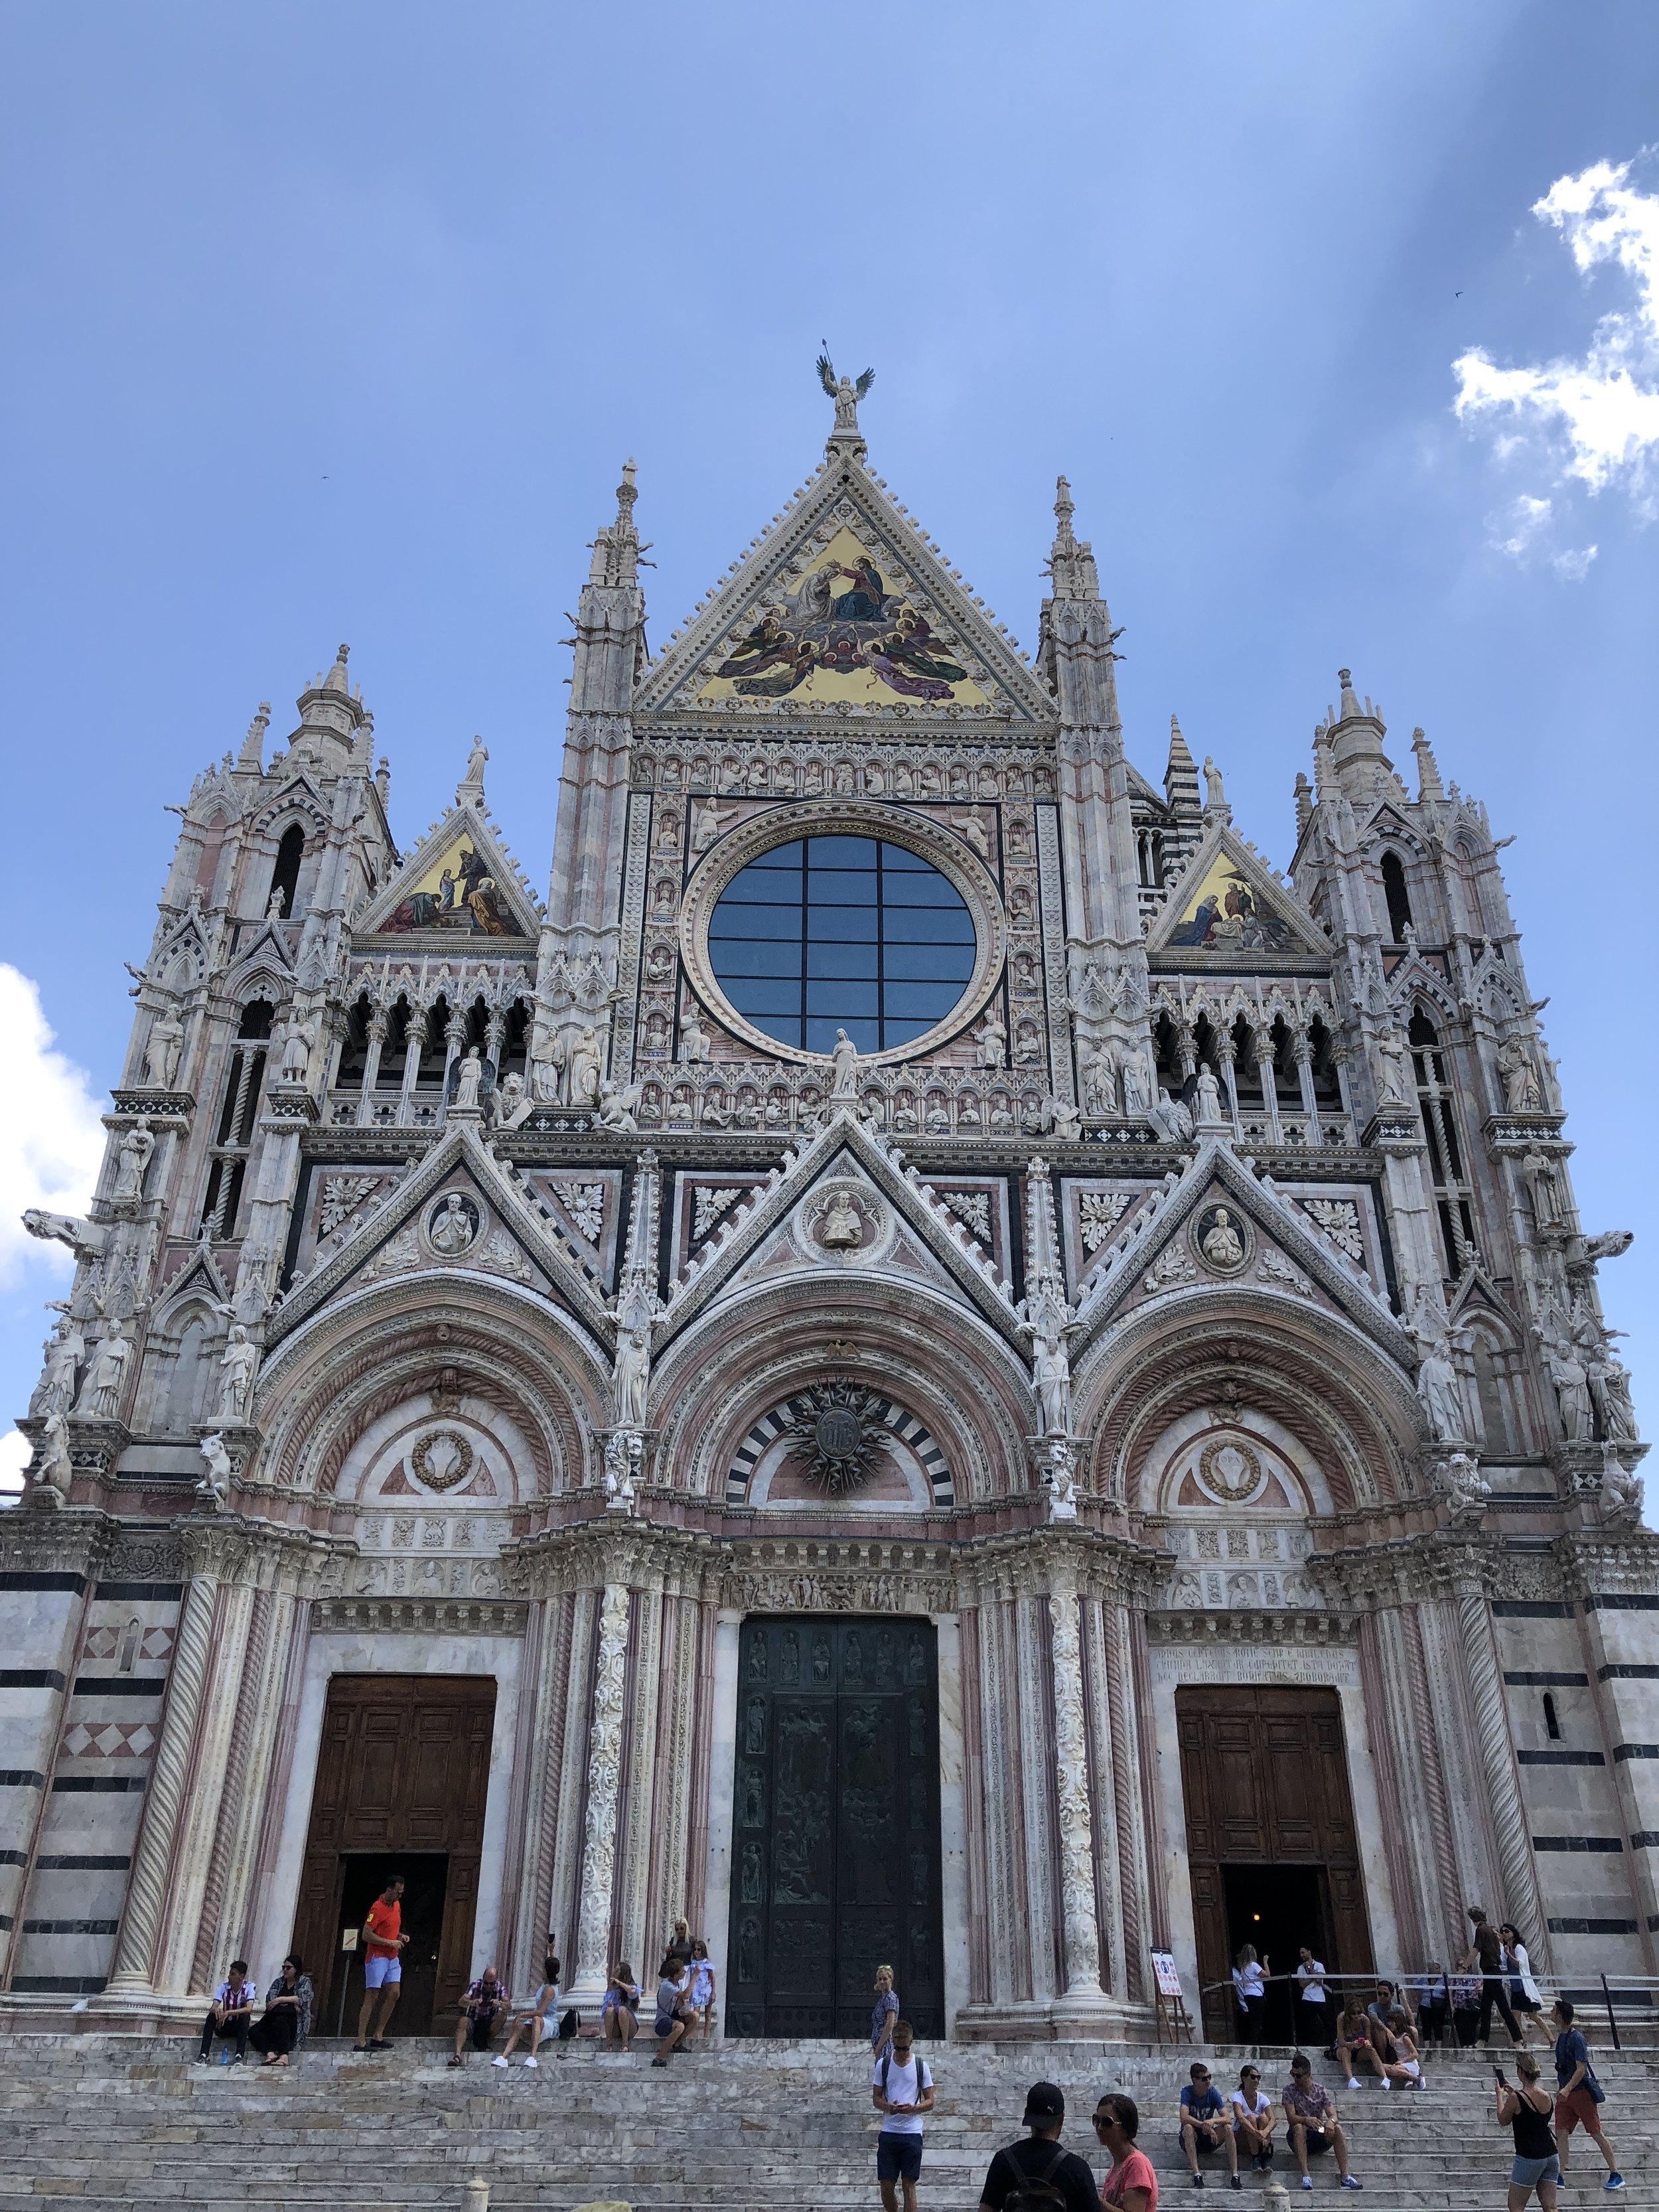 The back side of the Siena Cathedral